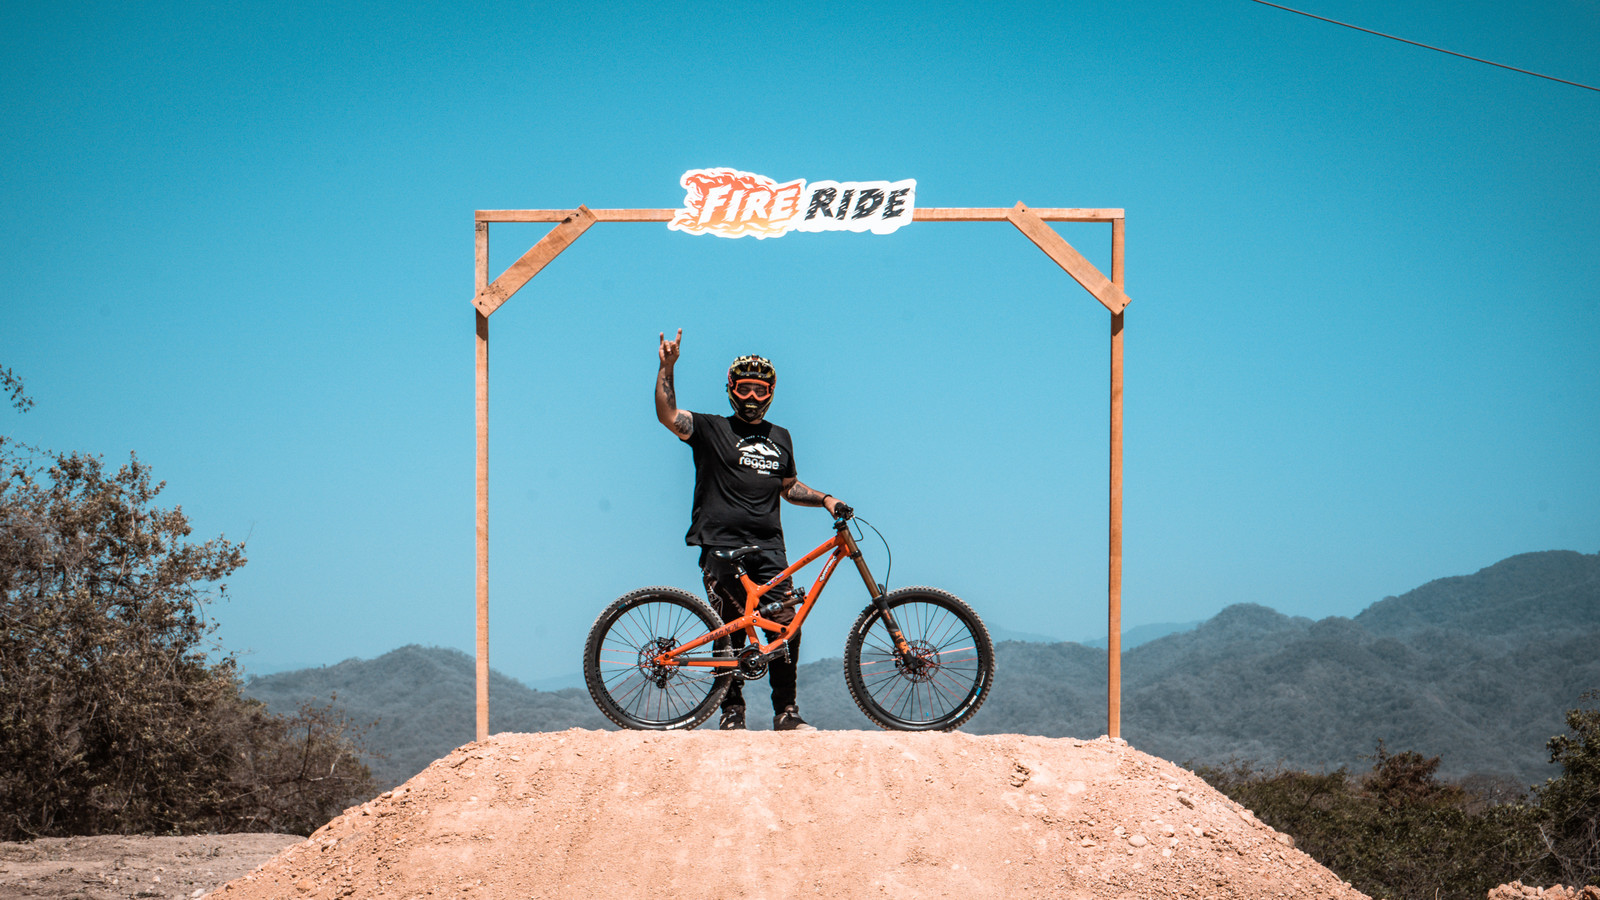 Tobo on his Commencal Furious